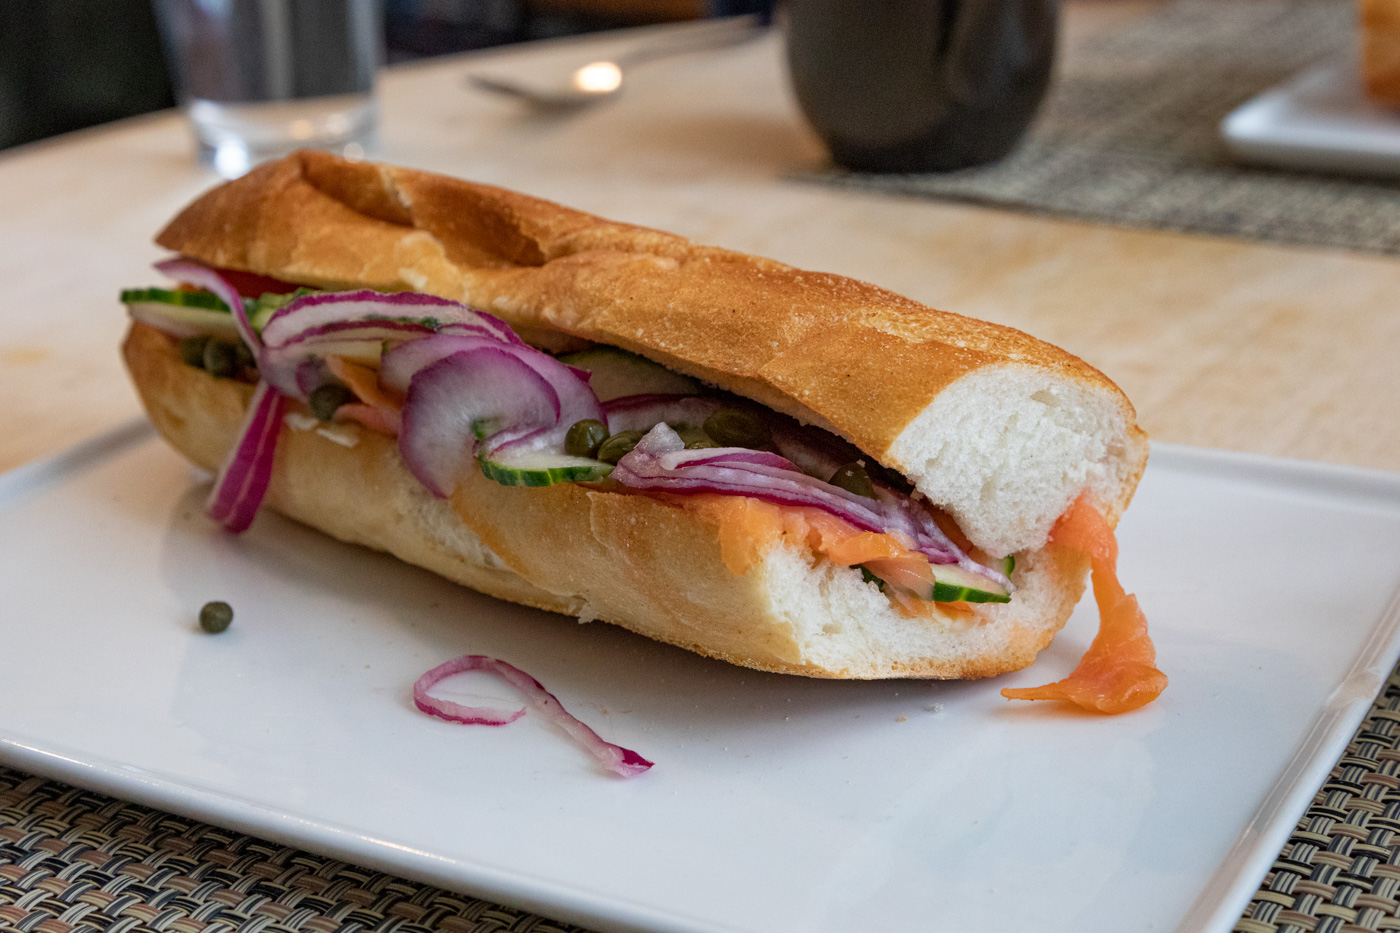 Lox, Tomato, Cucumber, Onion, Capers Sandwich from Cafe Lutecia